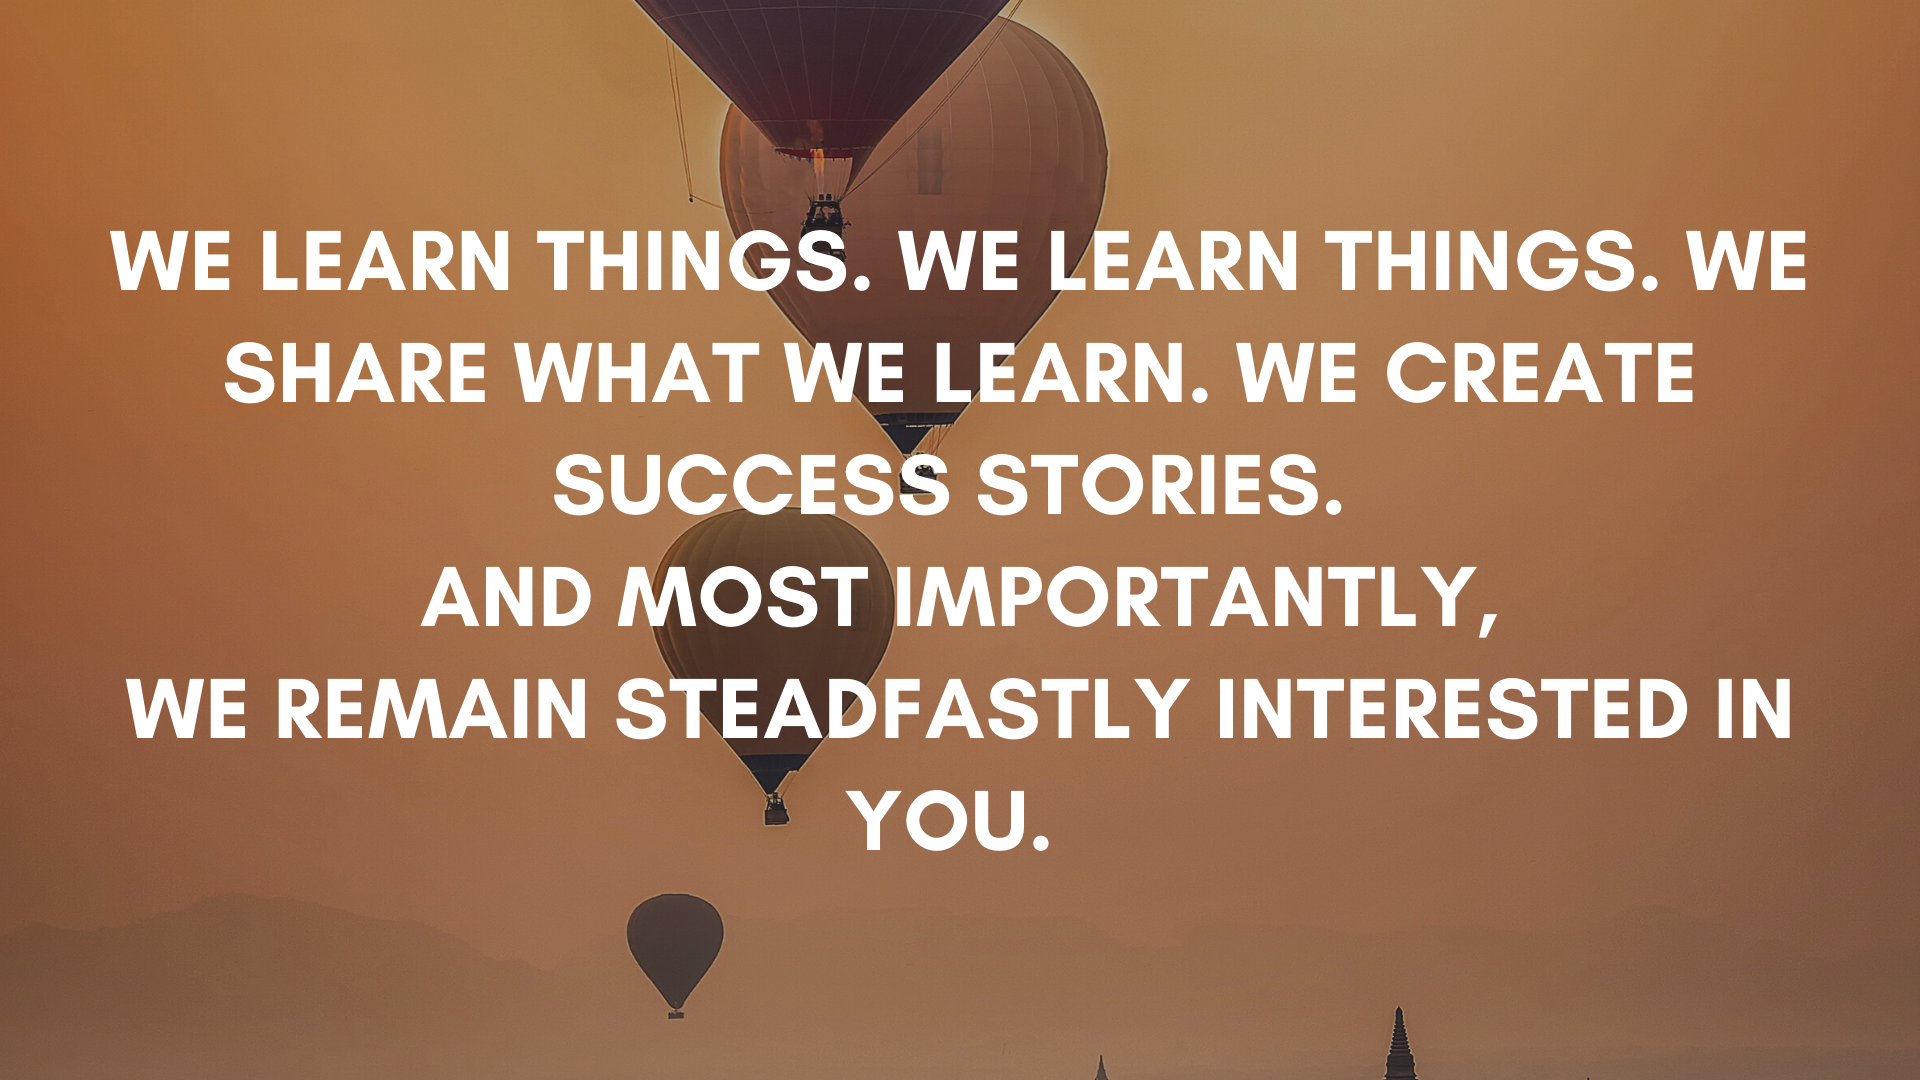 WE LEARN THINGS. WE LEARN THINGS. WE SHARE WHAT WE LEARN. WE CREATE SUCCESS STORIES. AND MOST IMPORTANTLY, WE REMAIN STEADFASTLY INTERESTED IN YOU.